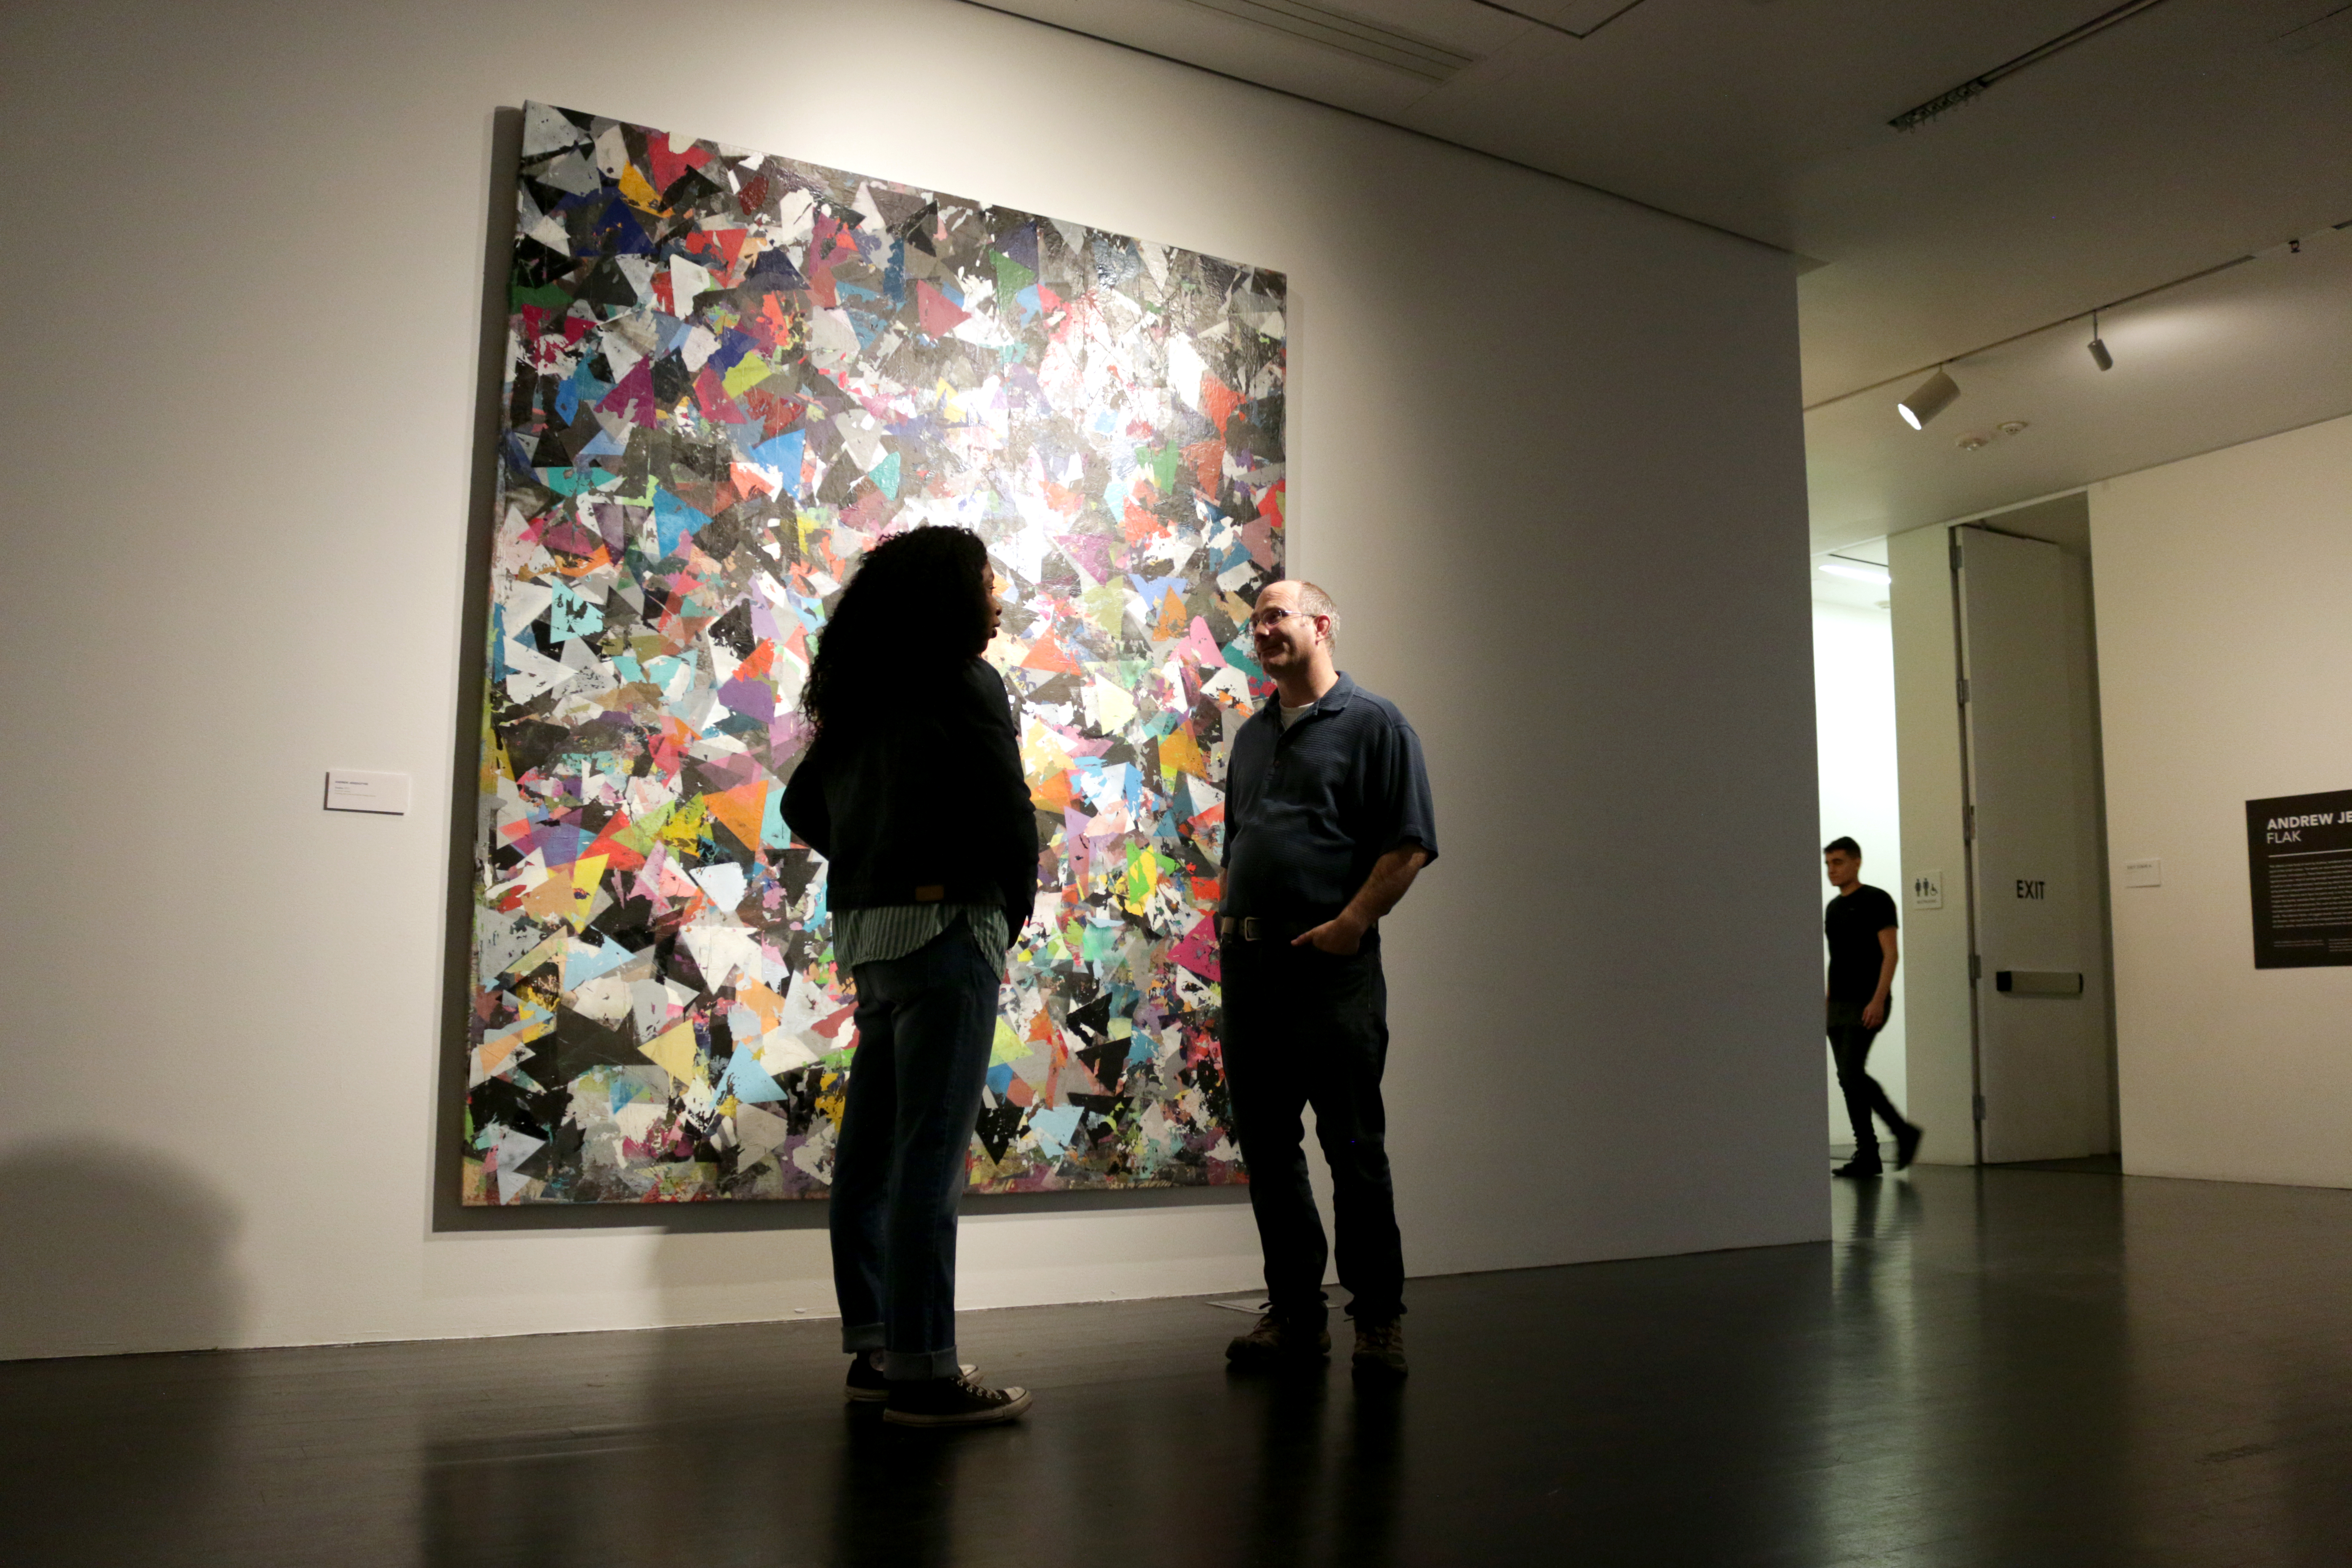 Two people talk in front of an abstract artwork in a dimly lit gallery.